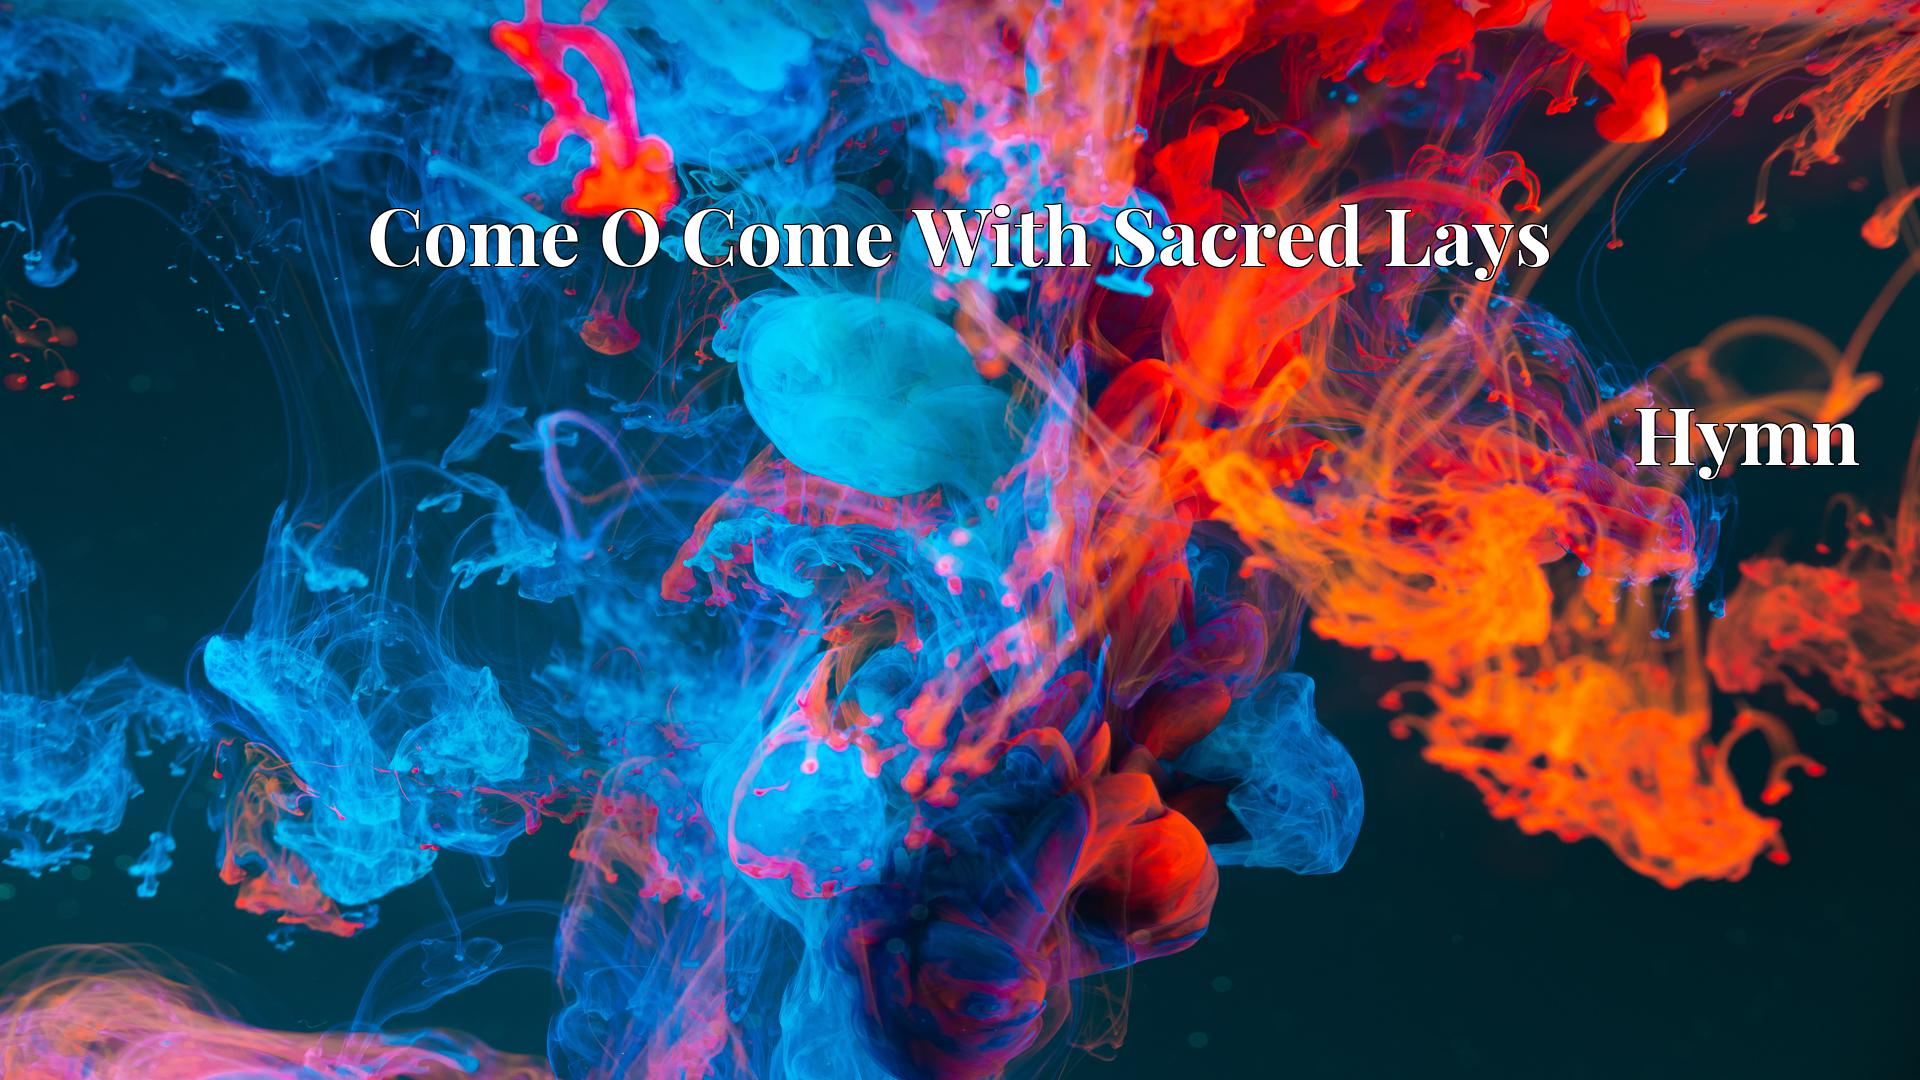 Come O Come With Sacred Lays - Hymn